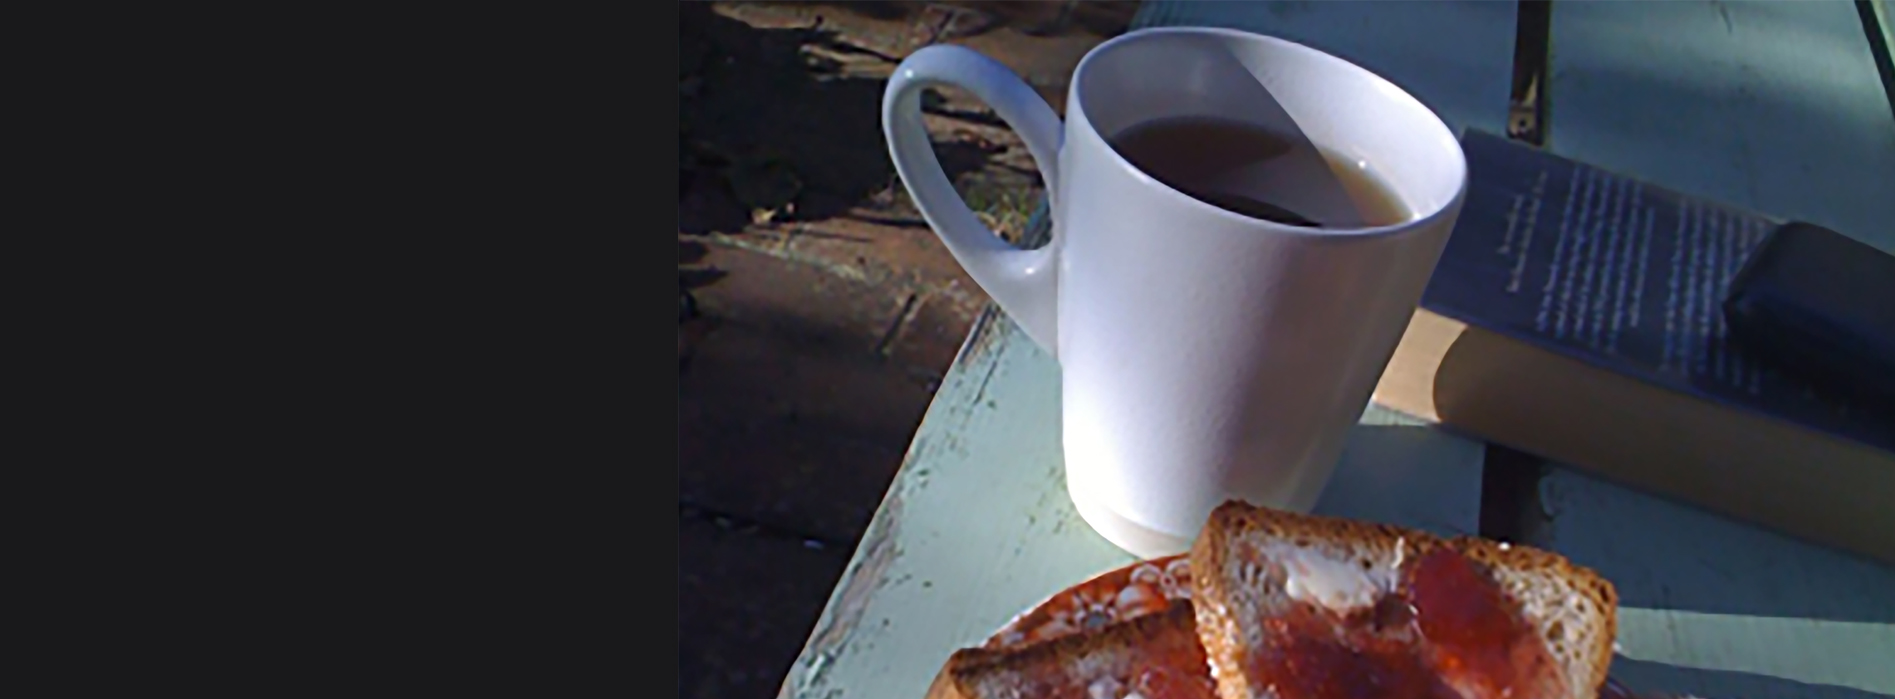 One slice of wholemeal bread, jam and a cup of tea